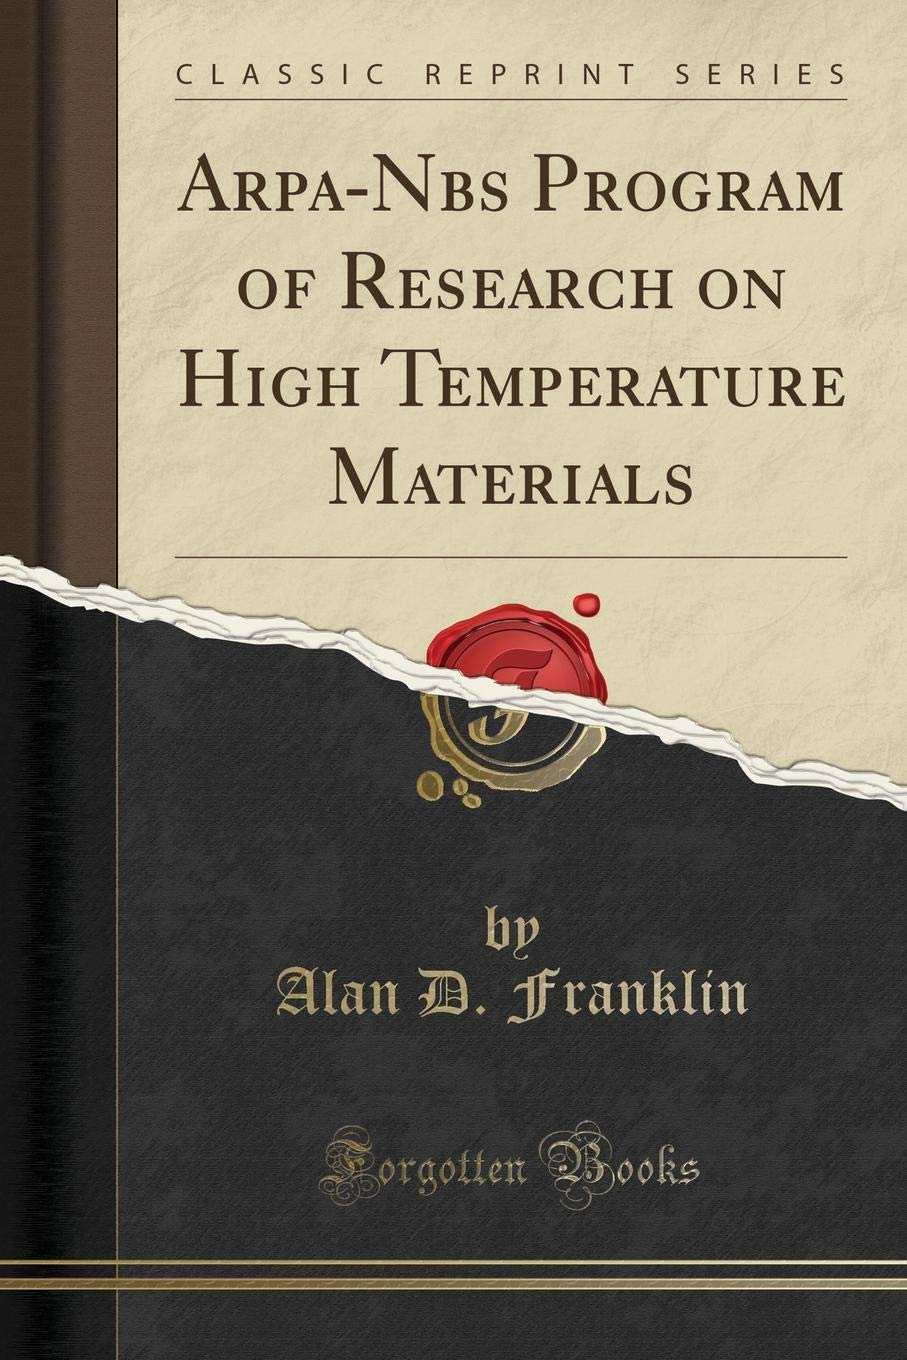 Read Online Arpa-Nbs Program of Research on High Temperature Materials (Classic Reprint) PDF